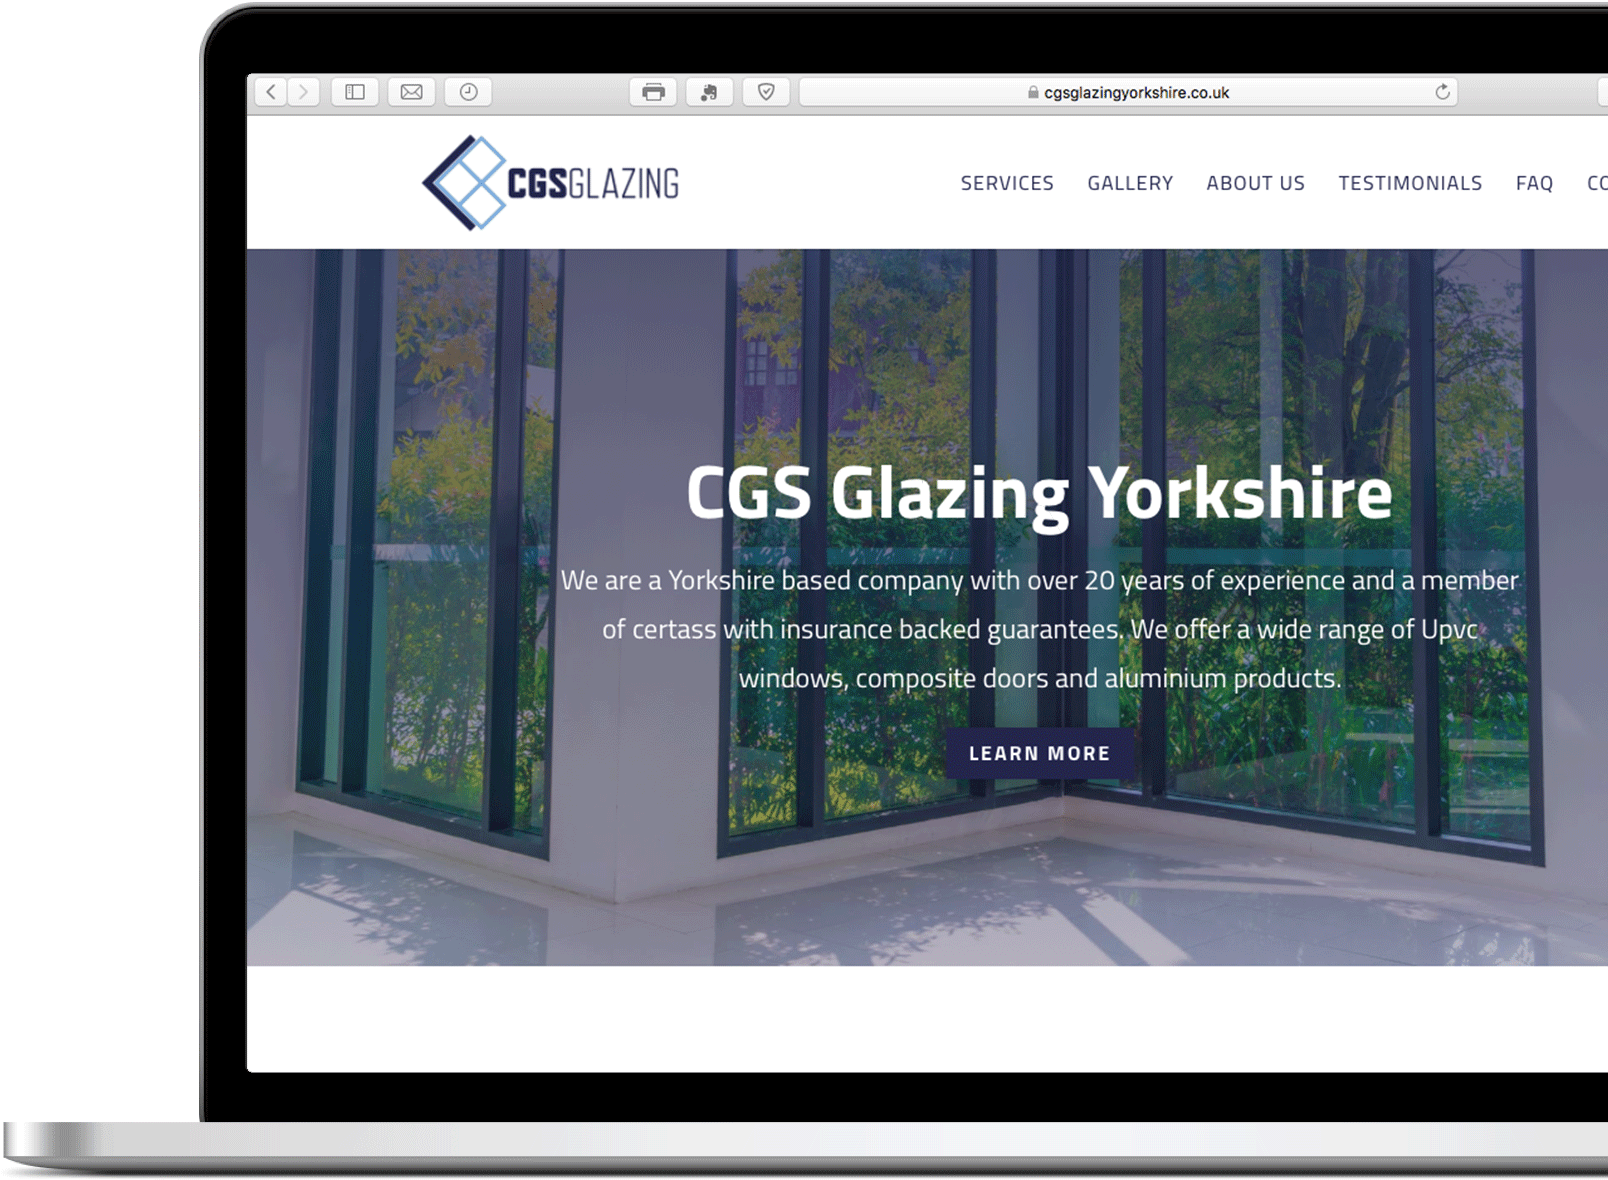 web design cgs glazing yorkshire